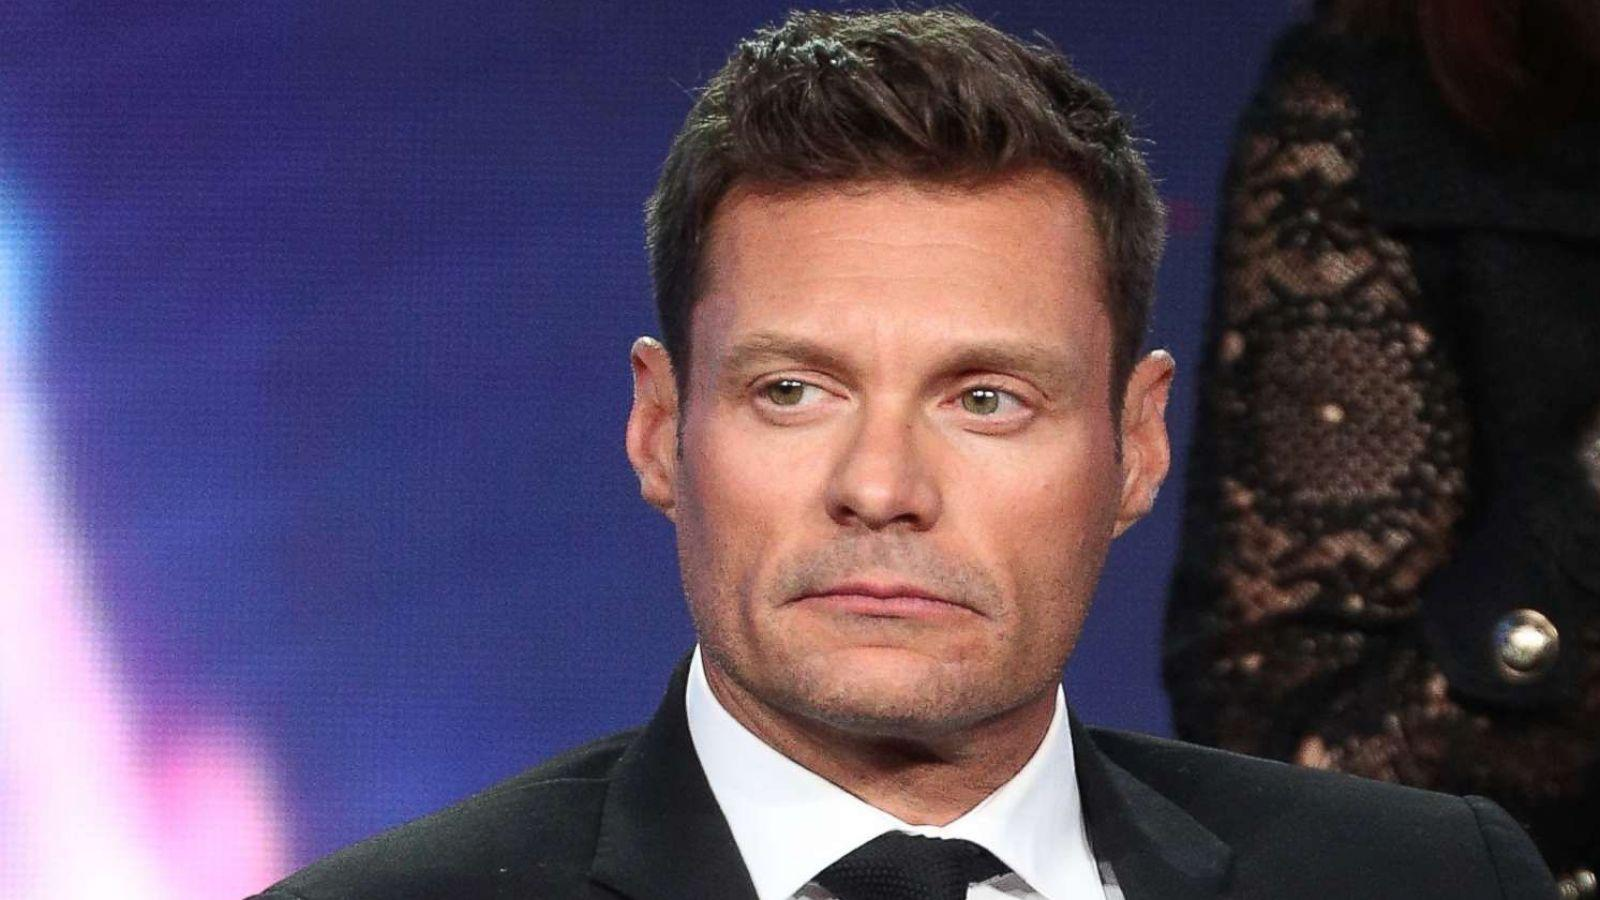 Ryan Seacrest responds to being 'wrongly accused of harassment